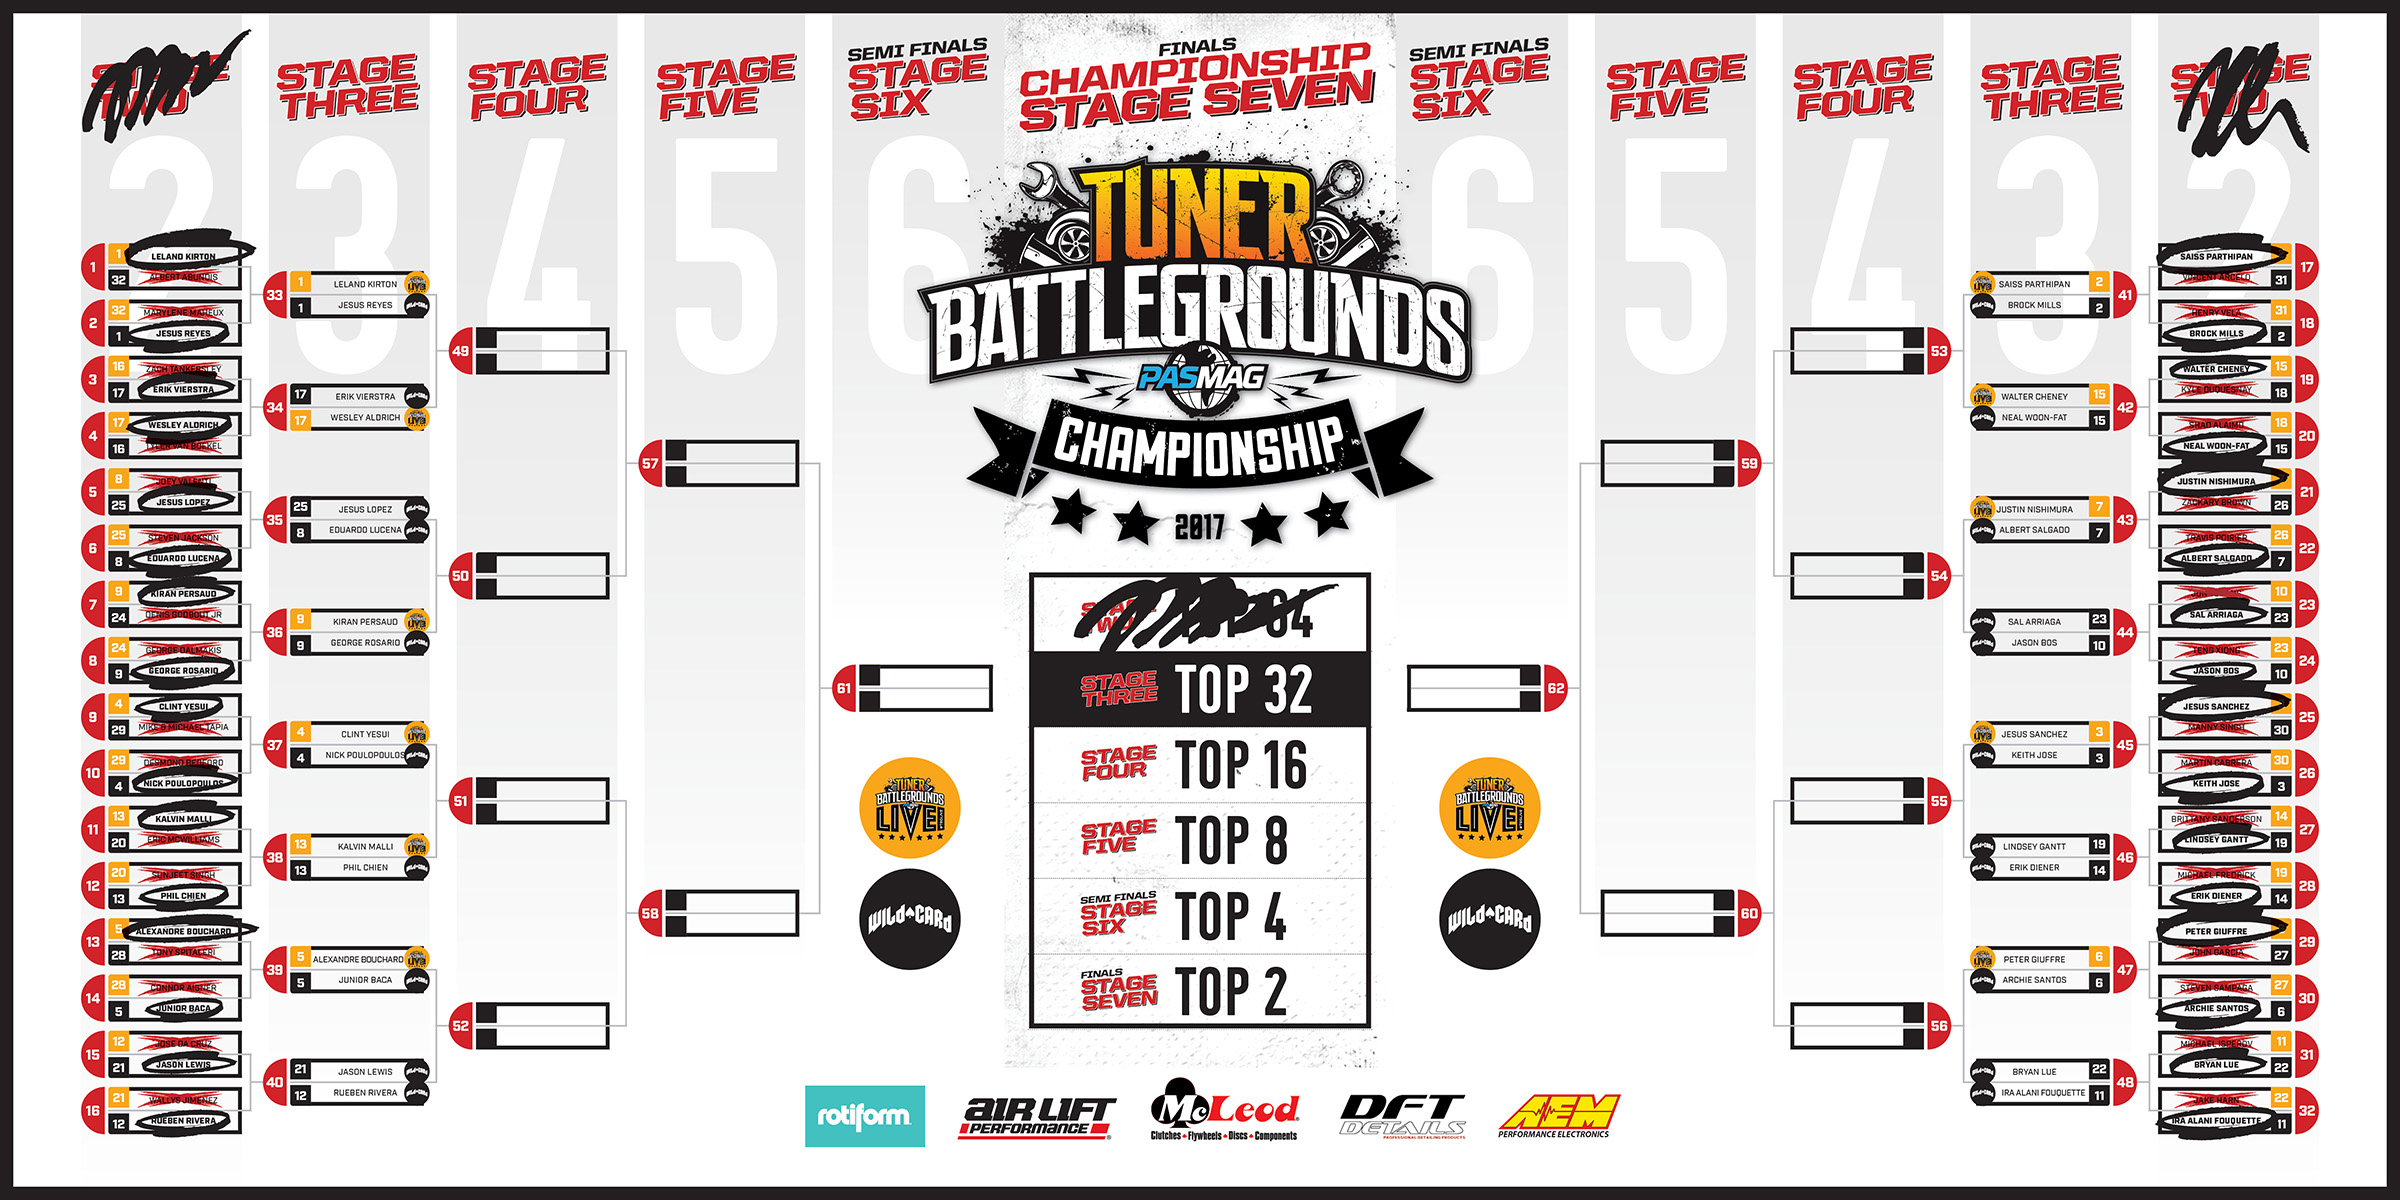 2017 TBG Championship Tournament Bracket Stage 3